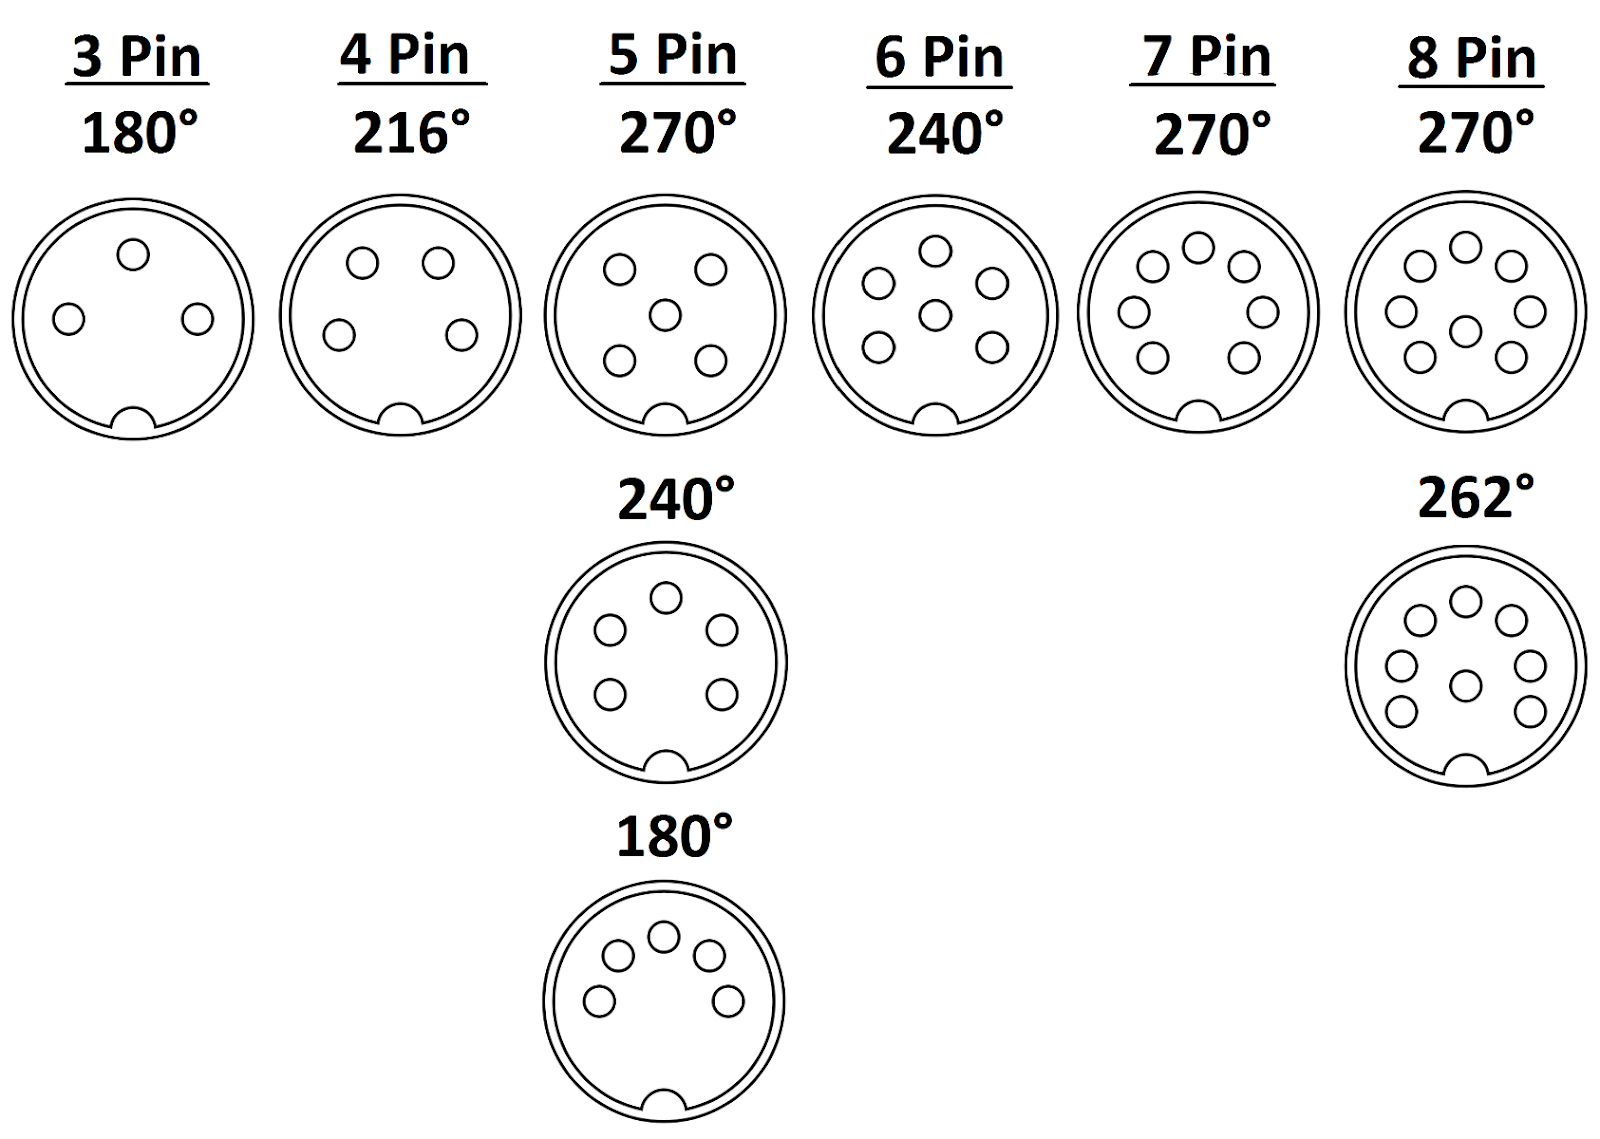 8 Pin Adapter Wiring Diagram